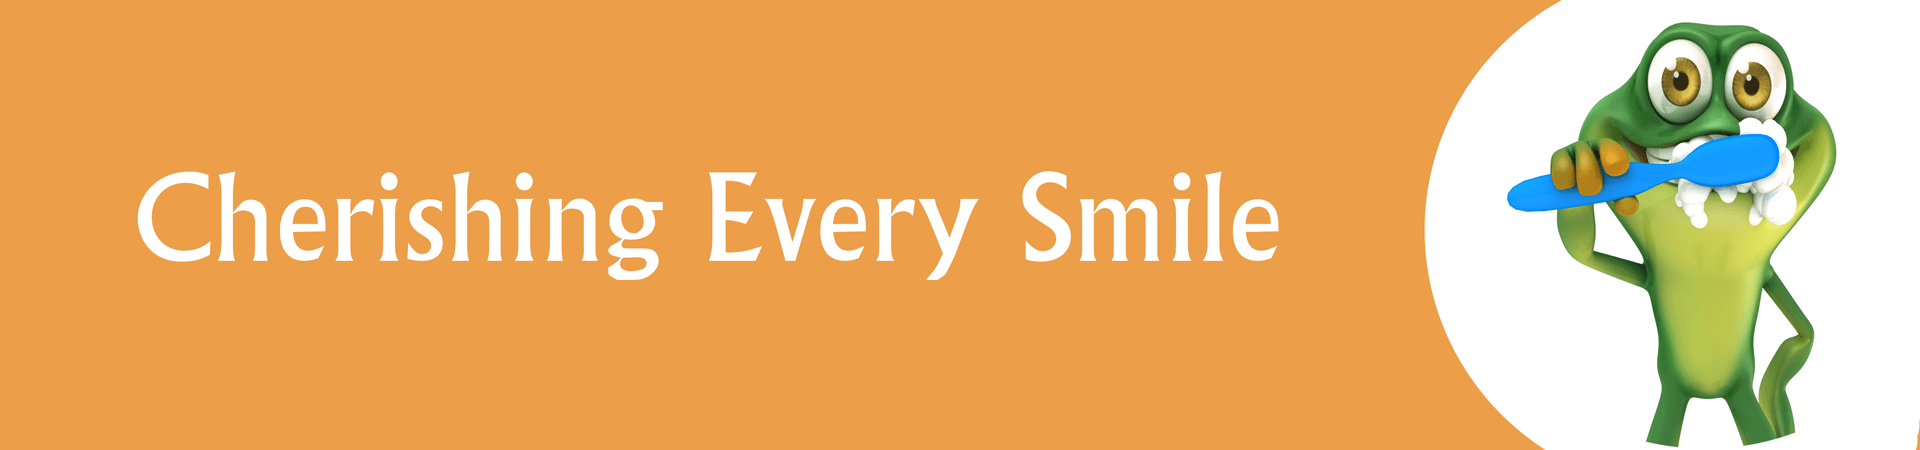 Children's Dentistry - Cherishing Every Smile